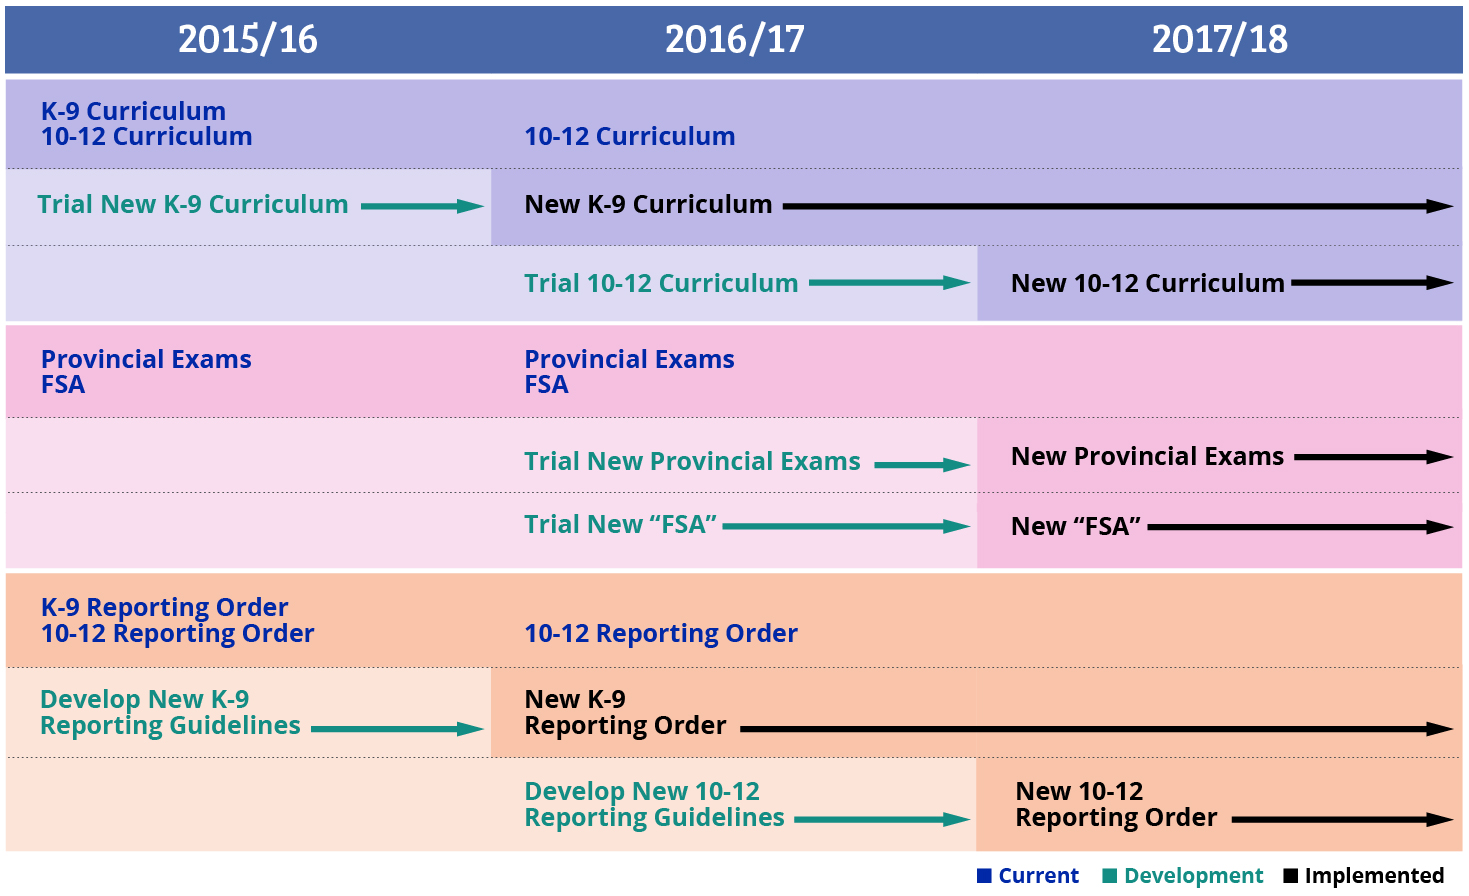 Curriculum_Timeline_for_Change